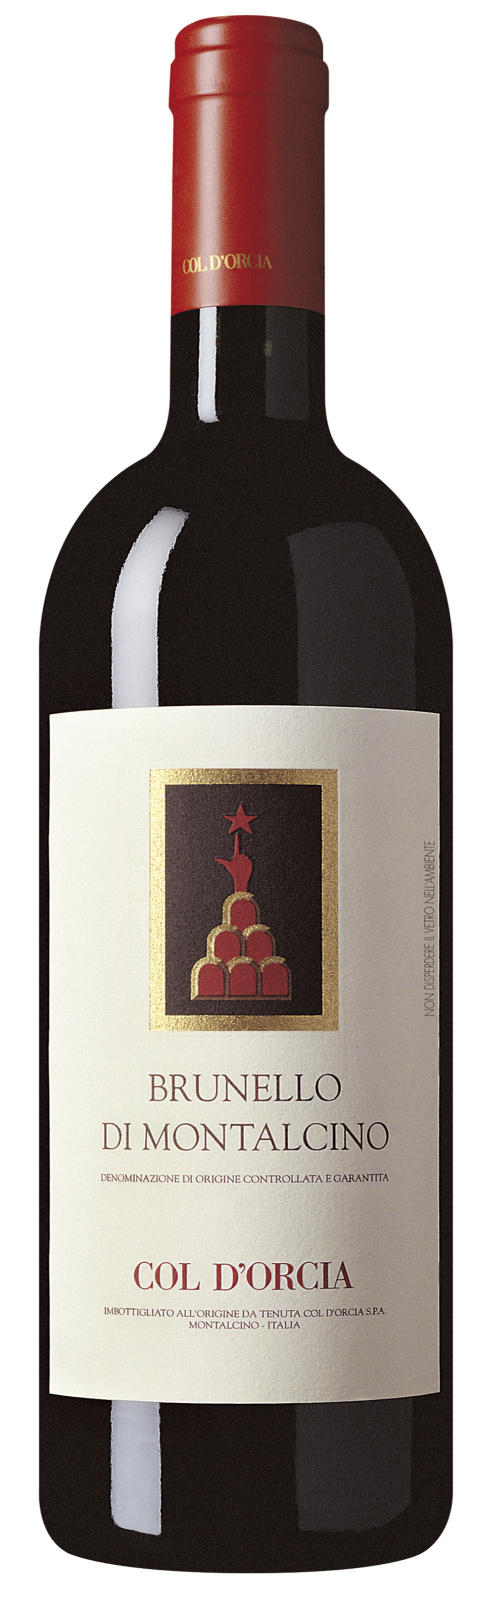 Col d´Orcia Brunello di Montalcino Magnum 2006 - Nyhet Systembolaget